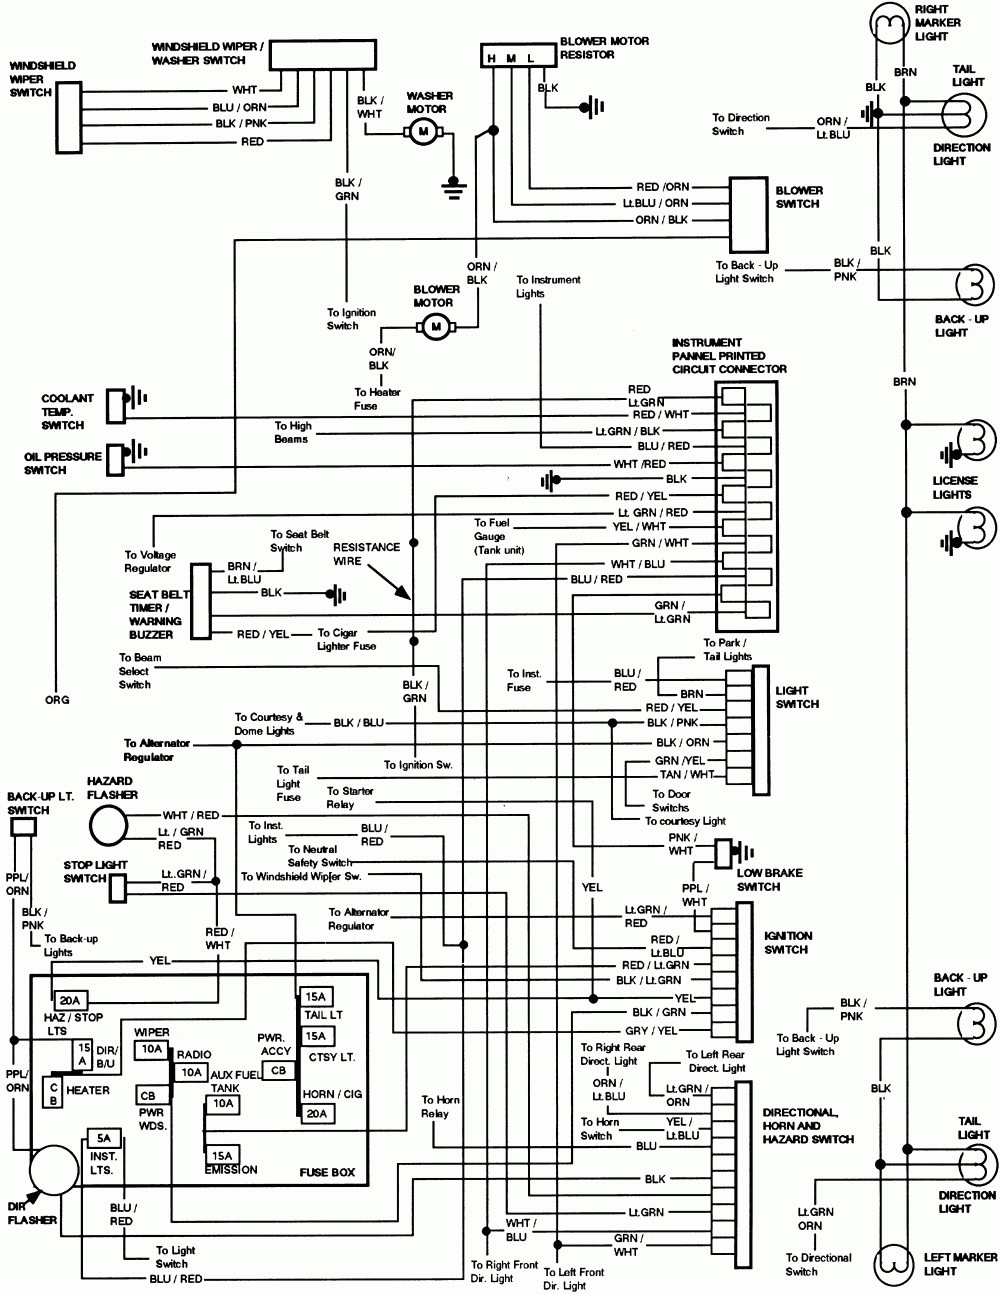 e 150 wiring diagrams manual e book  1985 ford e150 wiring diagram wiring diagram blog